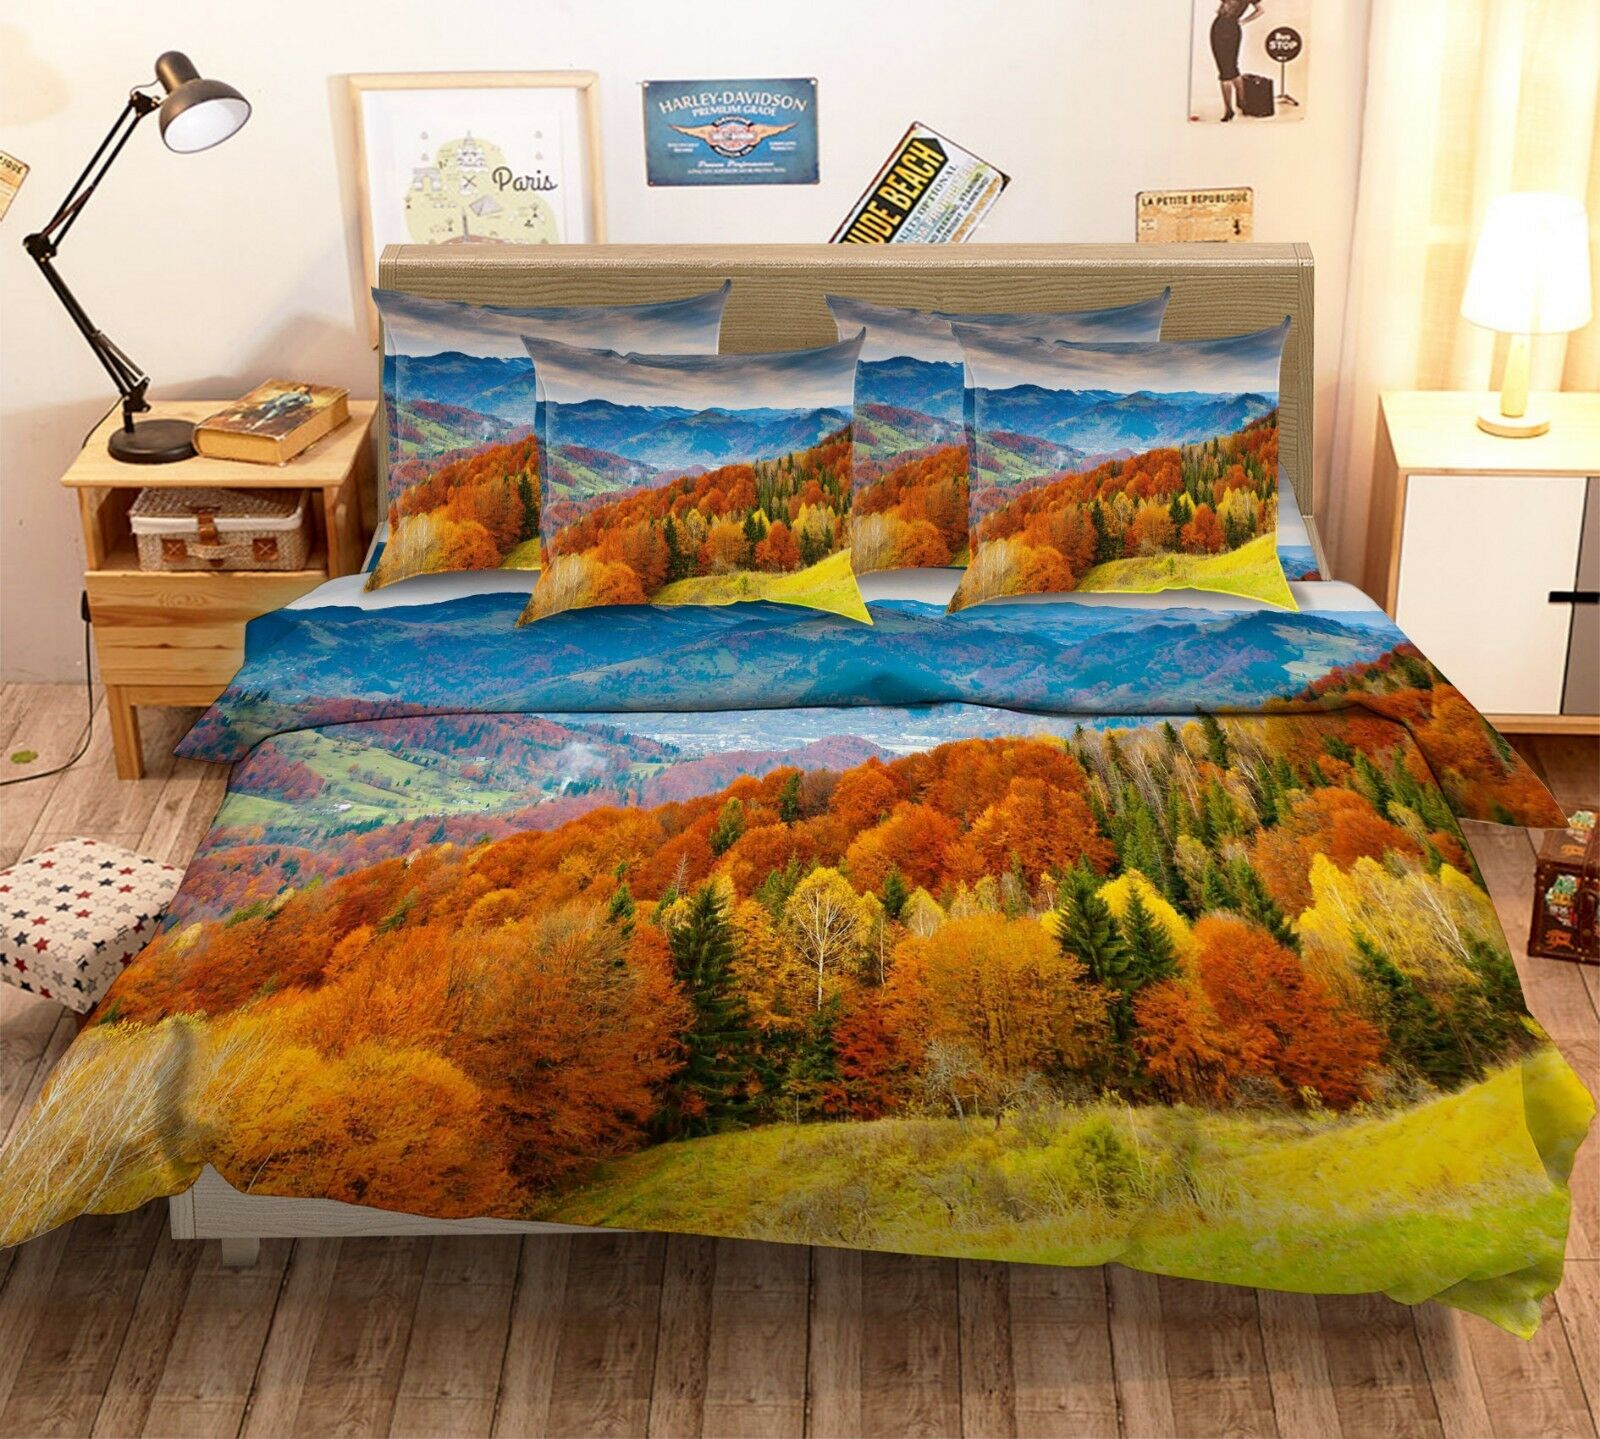 3D Autumn Forest View 2 Bed Pillowcases Quilt Duvet Cover Set Single Queen King